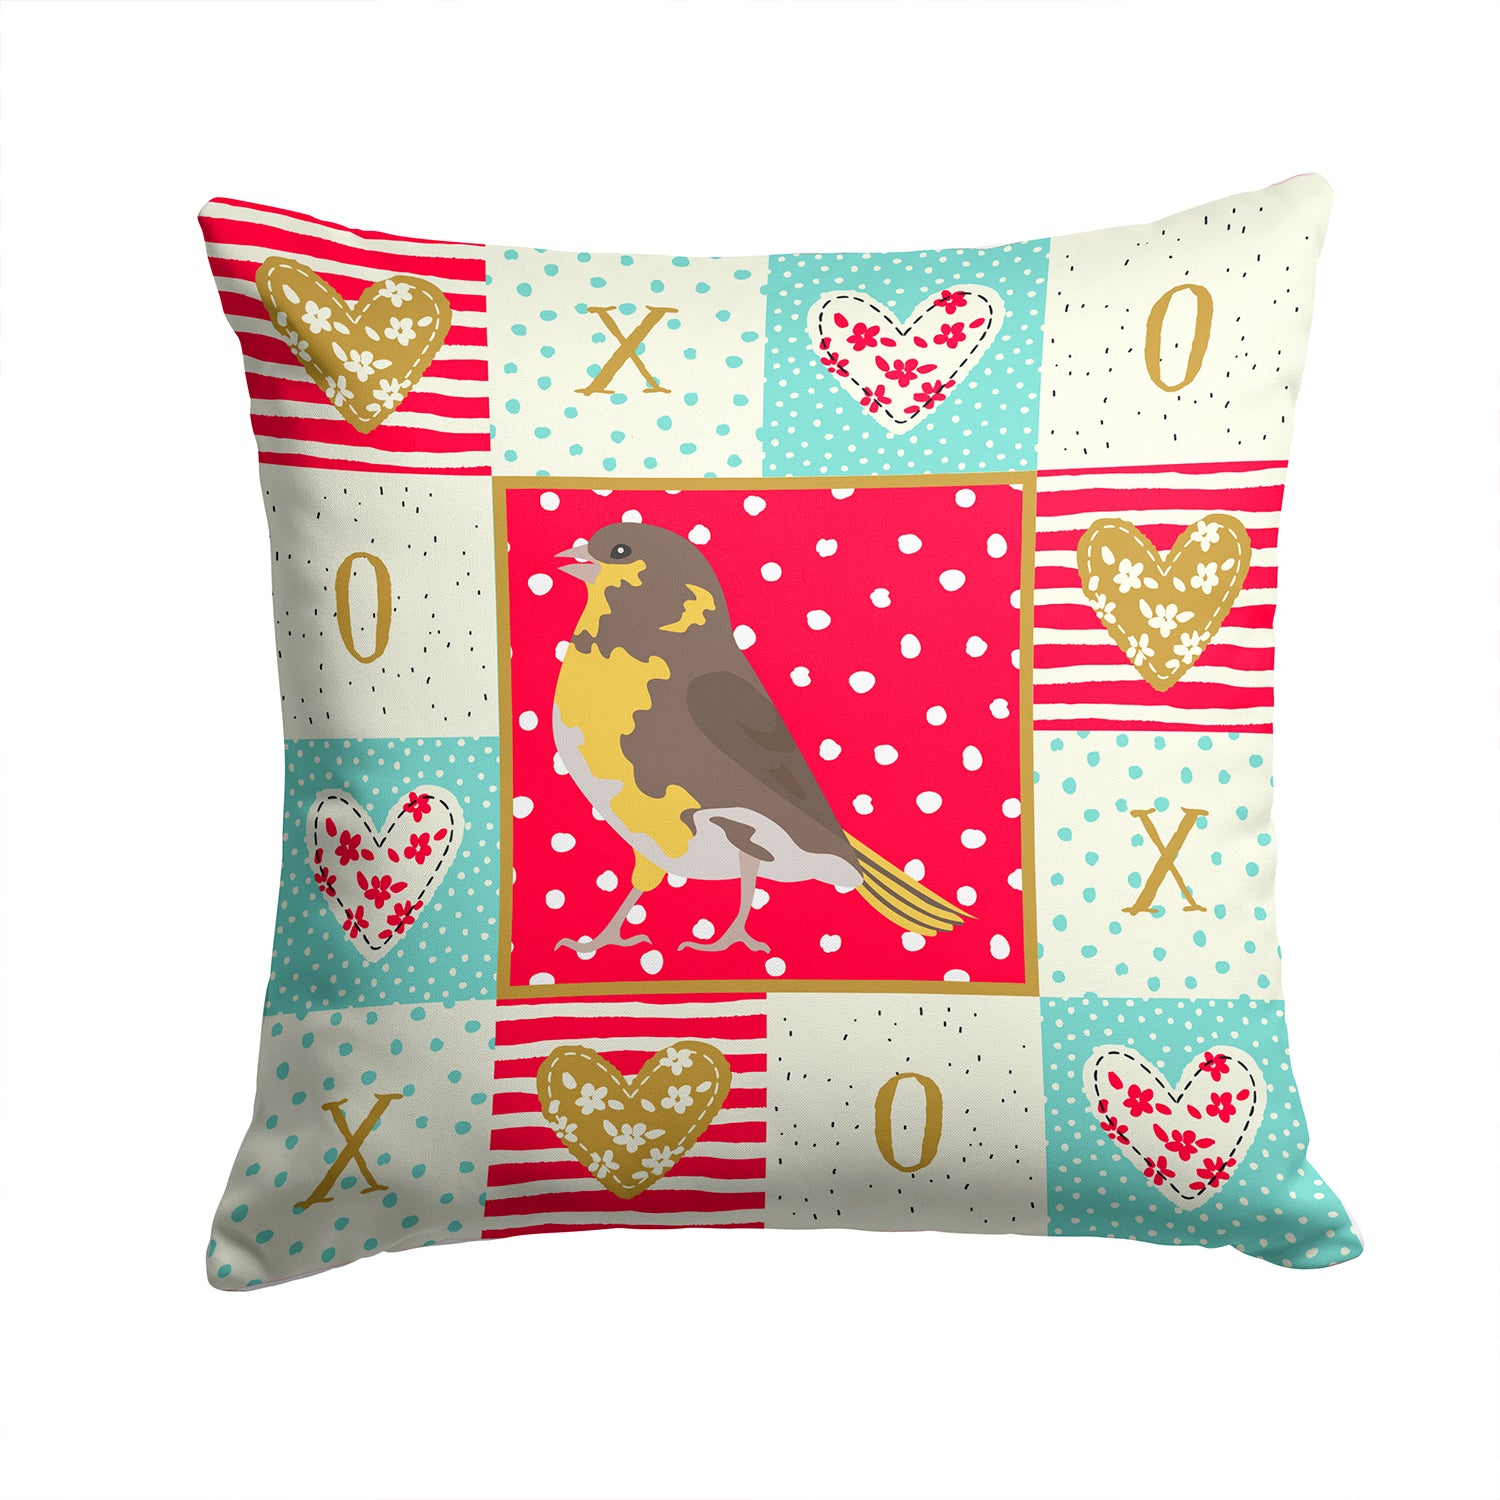 Spanish Canary Love Fabric Decorative Pillow CK5508PW1414 by Caroline's Treasures